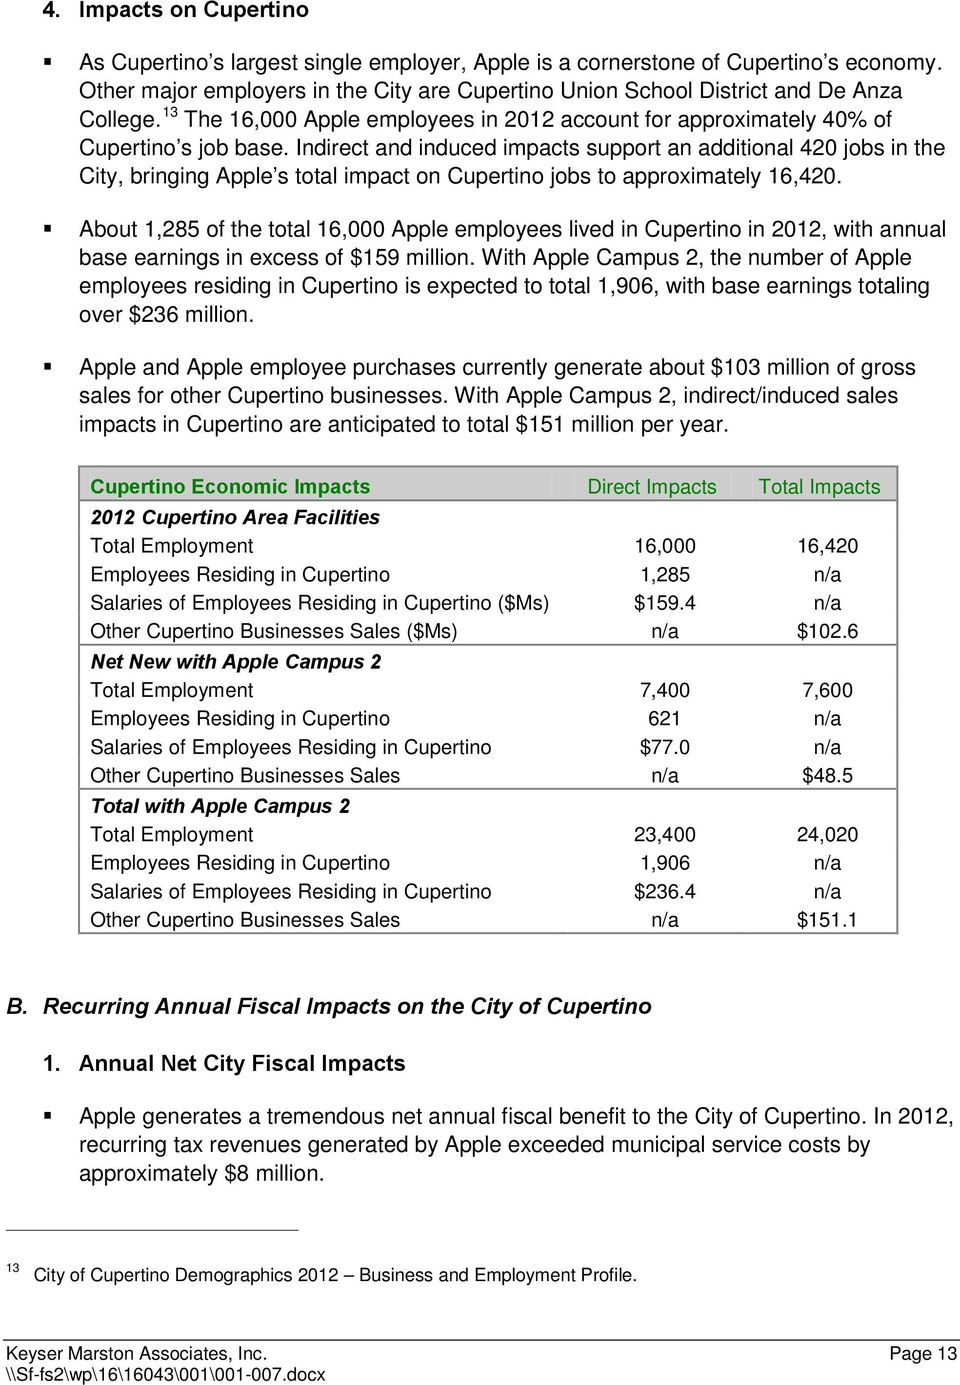 Indirect and induced impacts support an additional 420 jobs in the City, bringing Apple s total impact on jobs to approximately 16,420.